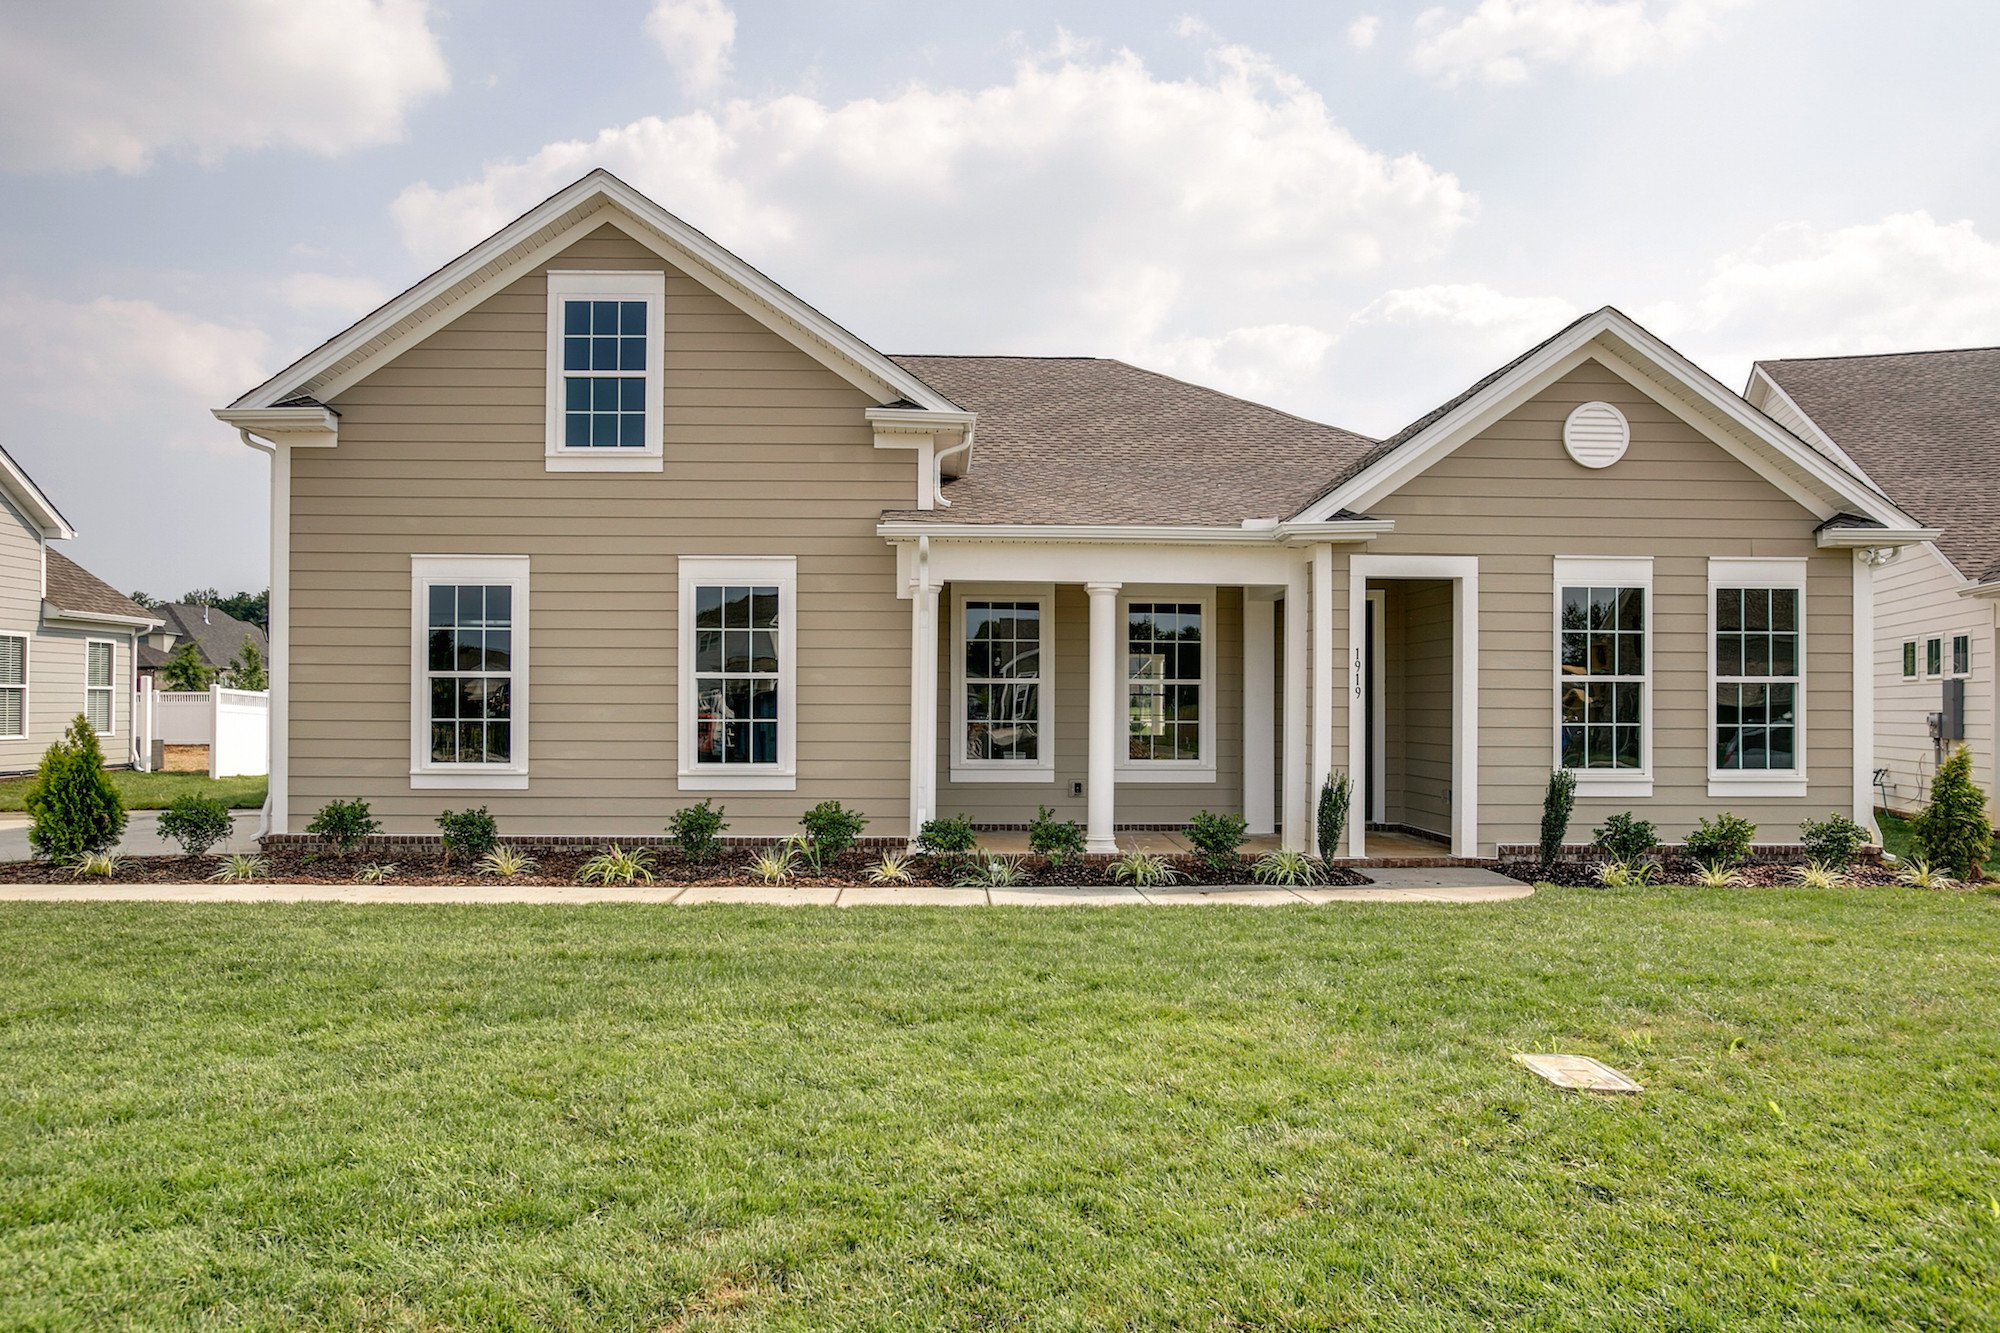 Crescent Homes Primm Springs Move In Ready Delaware exterior